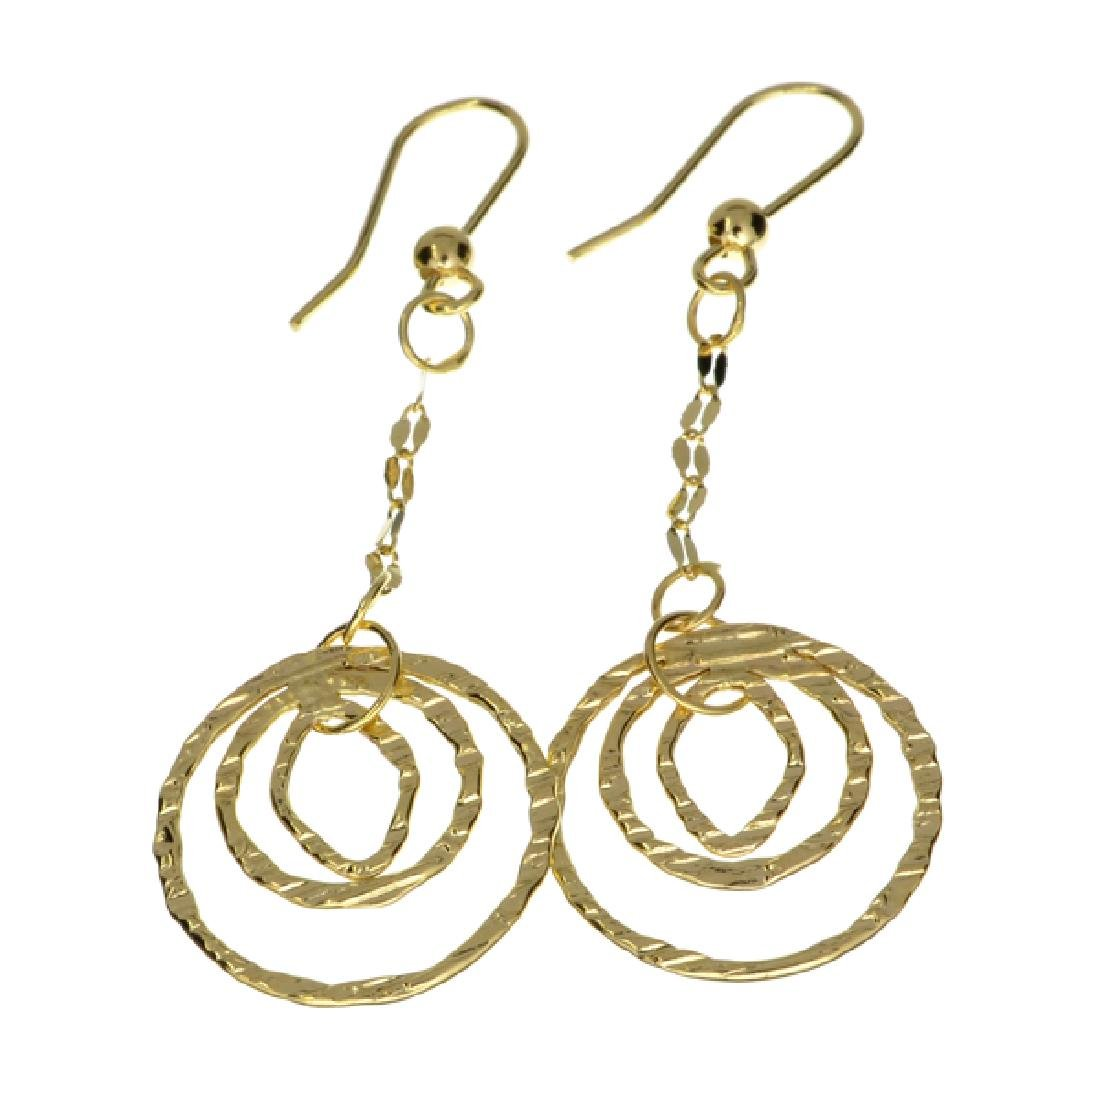 Exquisite 14 kt. Gold, Dangle With Fancy Circle Drop